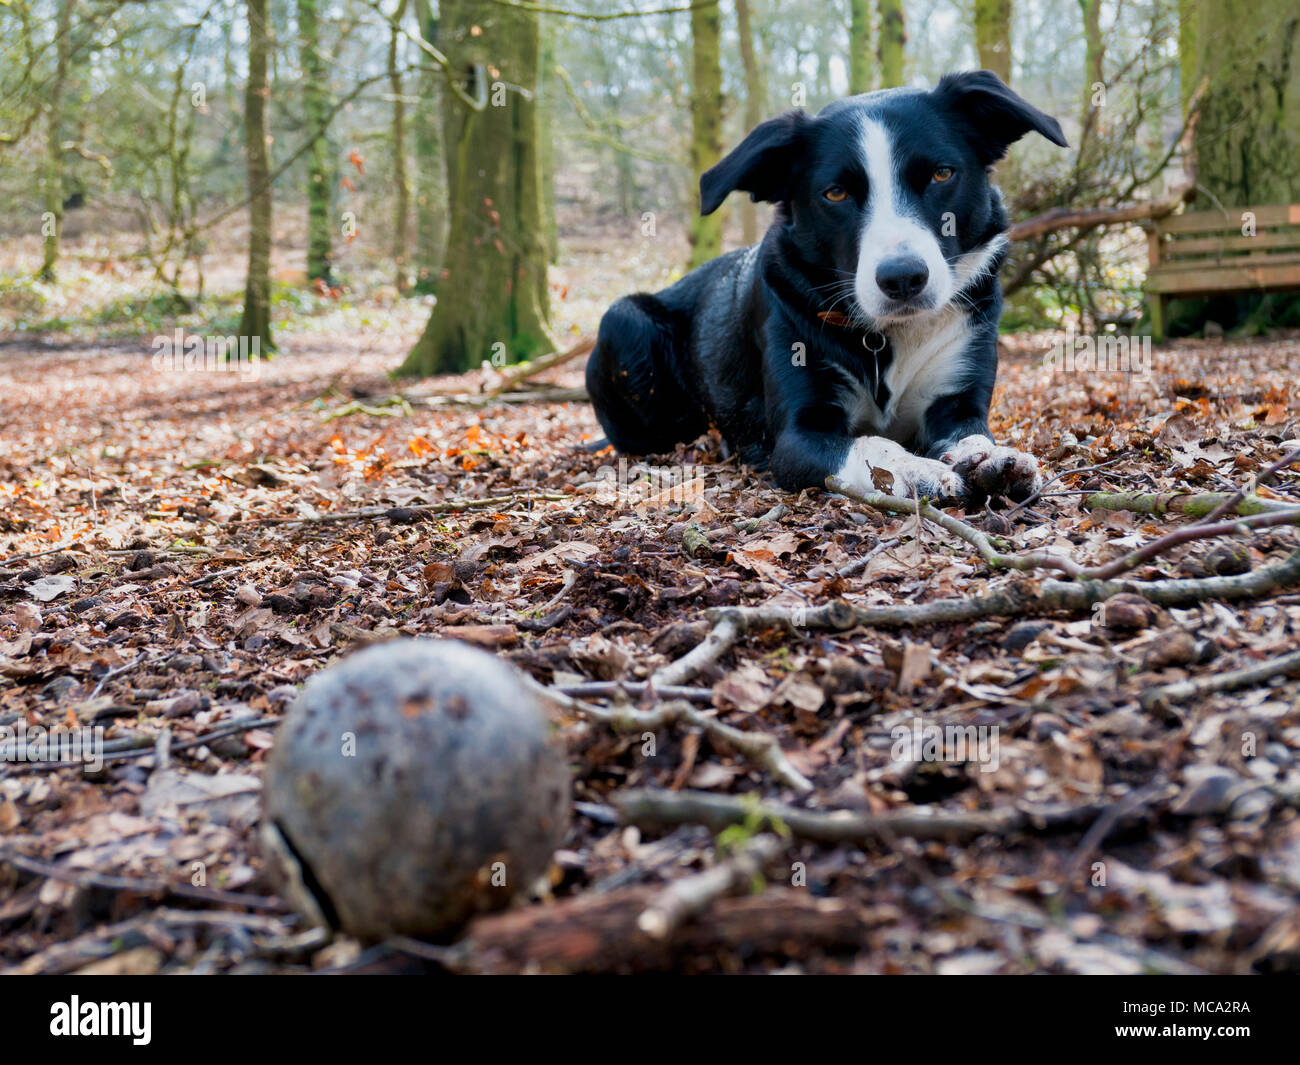 Derbyshire, UK, 14 April 2018. UK Weather: dog having fun playing with a ball in the woods as warm spring temperatures finally arrive in Ashbourne, Derbyshire, Peak District National Park Credit: Doug Blane/Alamy Live News - Stock Image